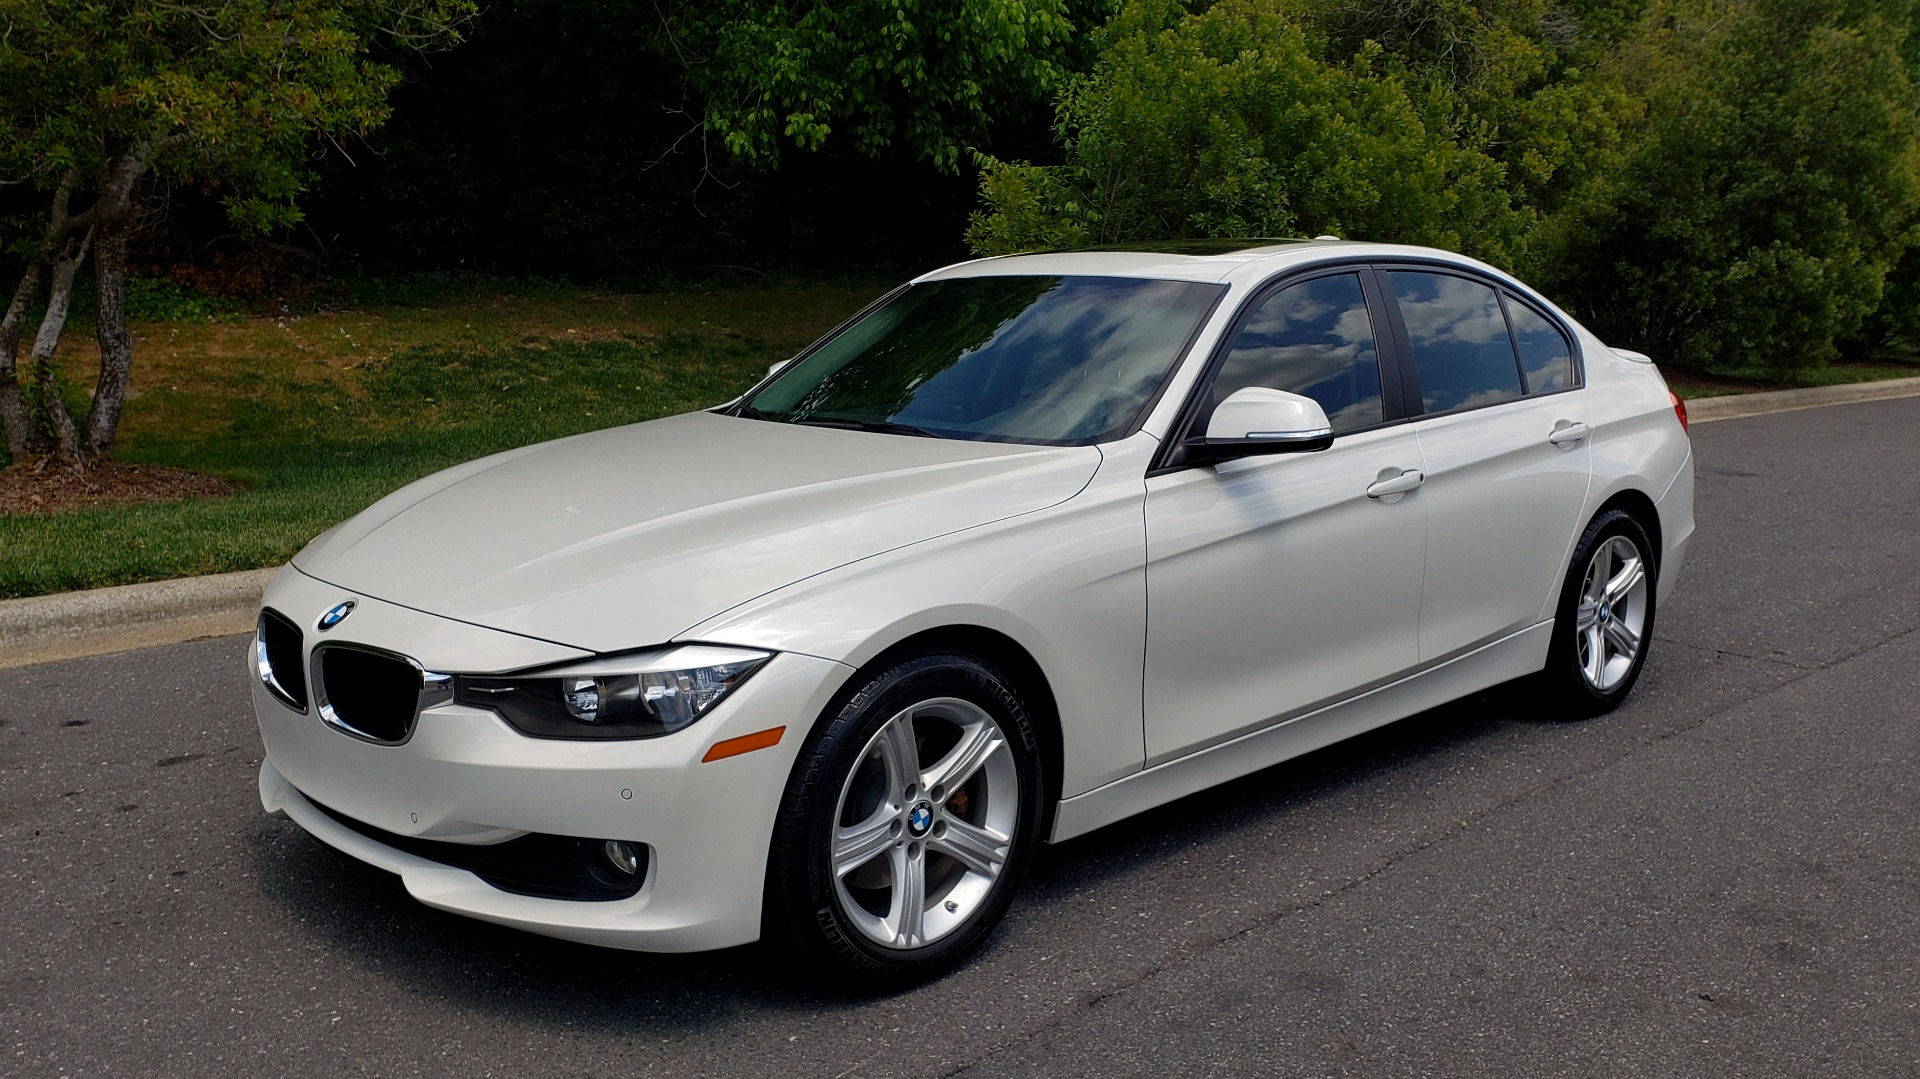 Used 2015 BMW 3 SERIES 328I PREMIUM / NAV / SUNROOF / HTD STS / DRIVER ASST / REARVIEW for sale Sold at Formula Imports in Charlotte NC 28227 1